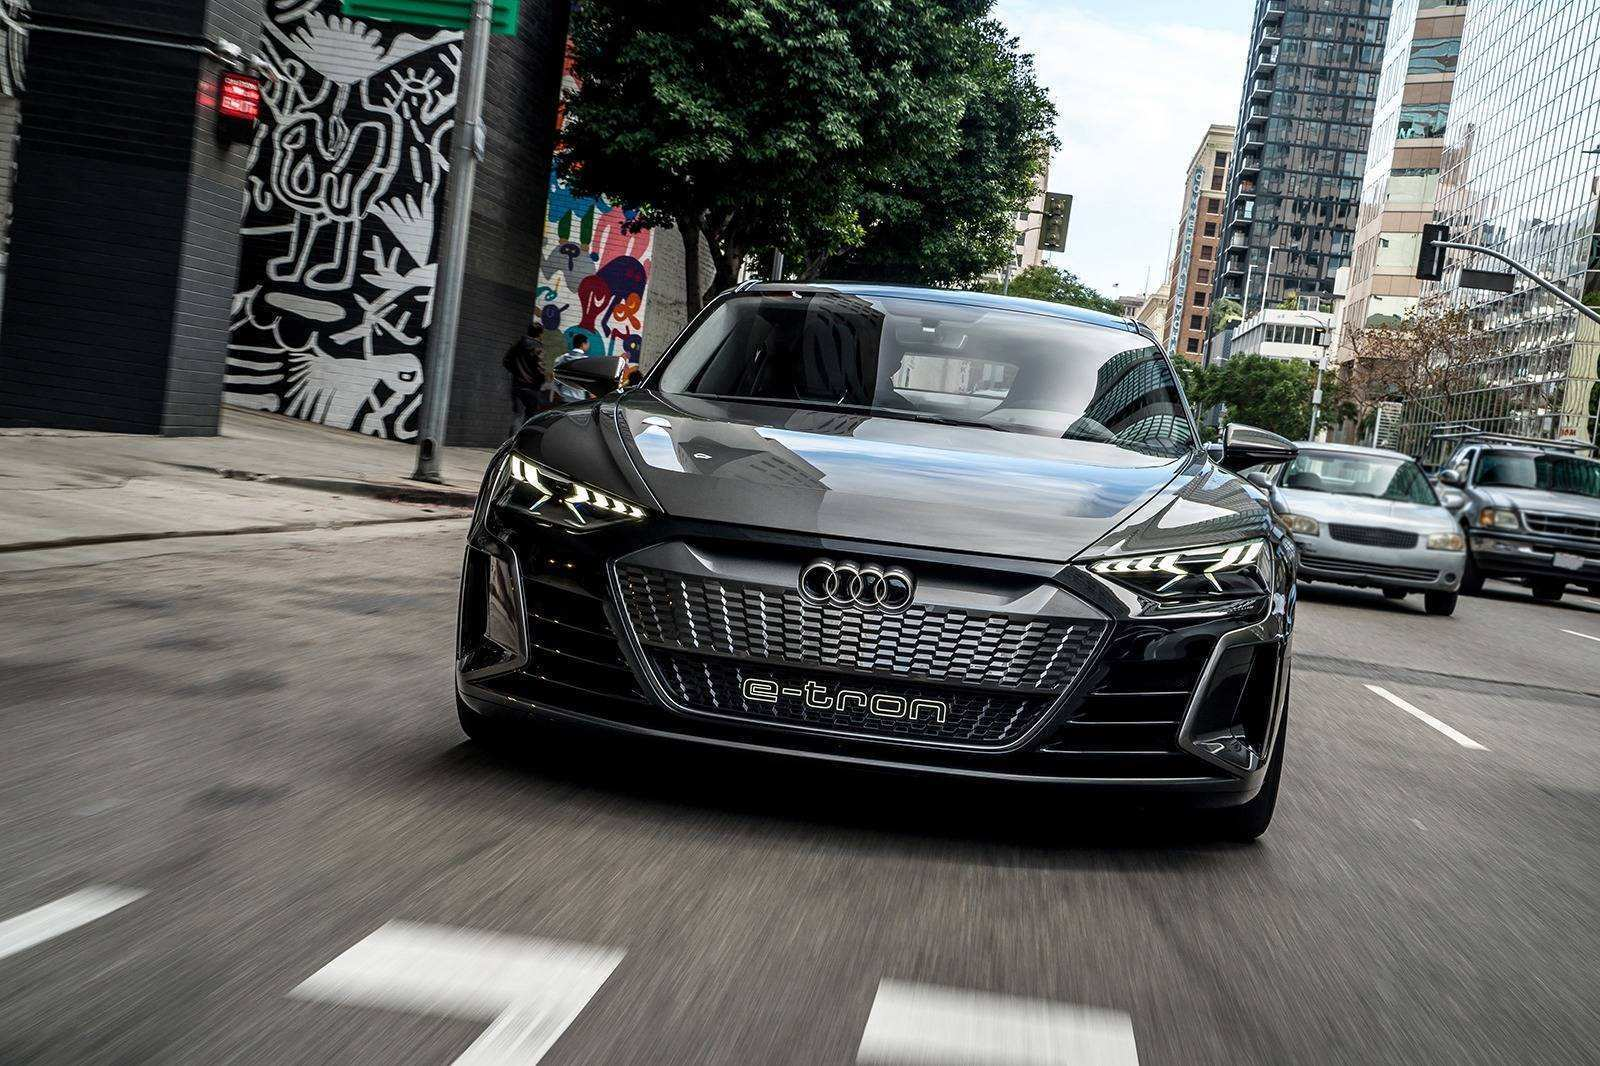 63 A Audi E Tron Gt Price 2020 Review And Release Date